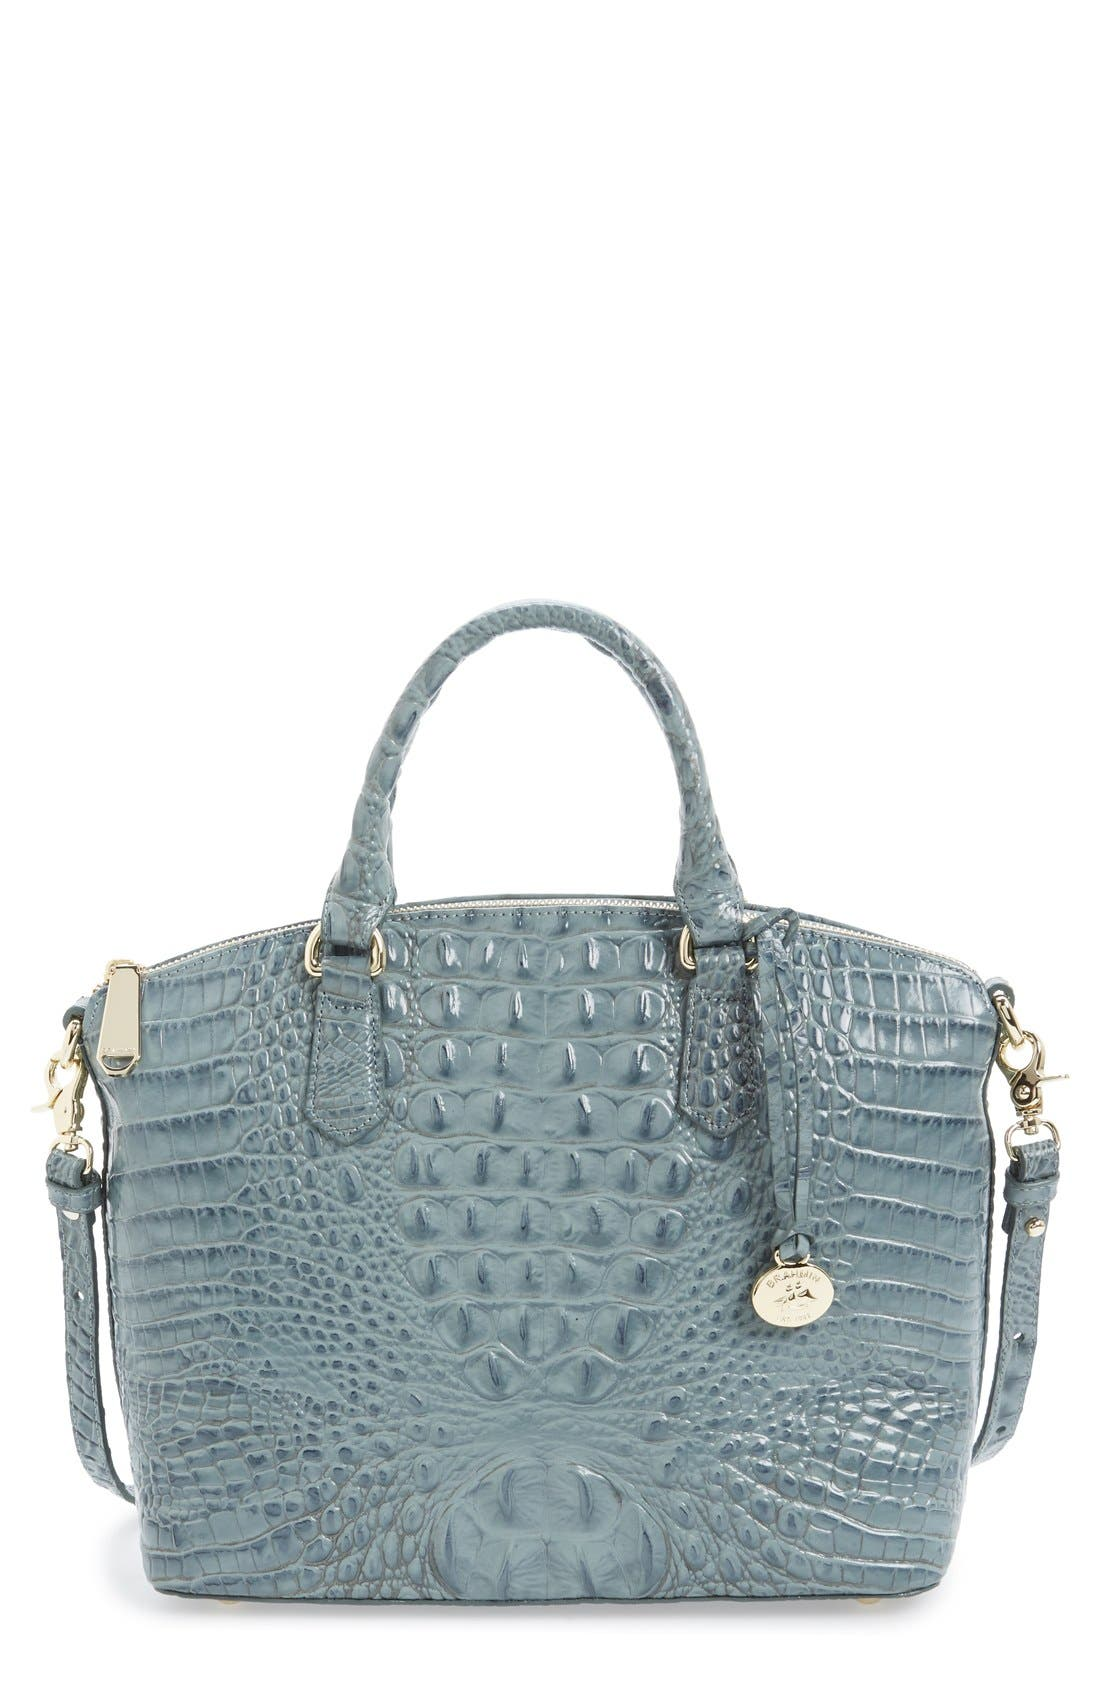 'Medium Duxbury' Croc Embossed Leather Satchel,                             Main thumbnail 15, color,